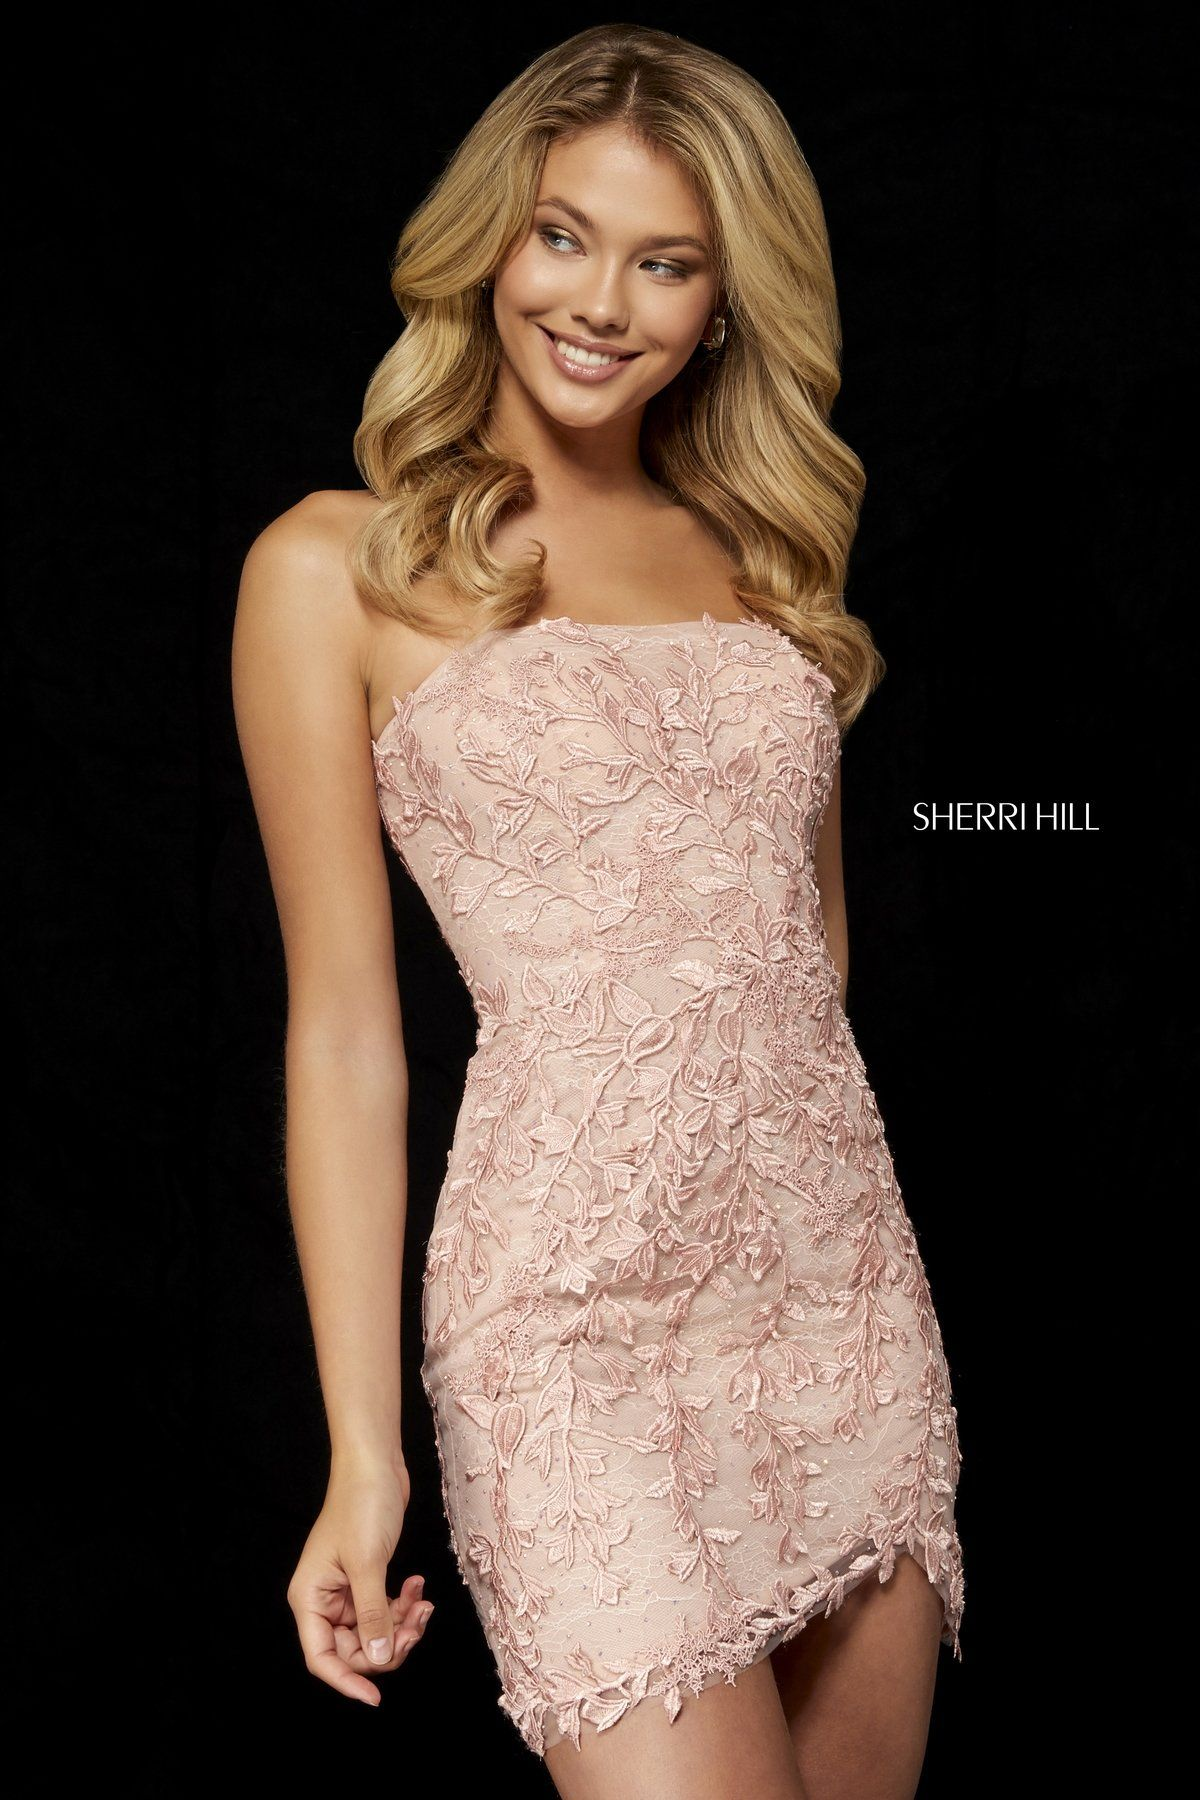 ef82a9e8d4e5 This Sherri Hill 52339 short dress is simple and feminine. The strapless  neckline is complemented nicely by an asymmetrical short skirt.